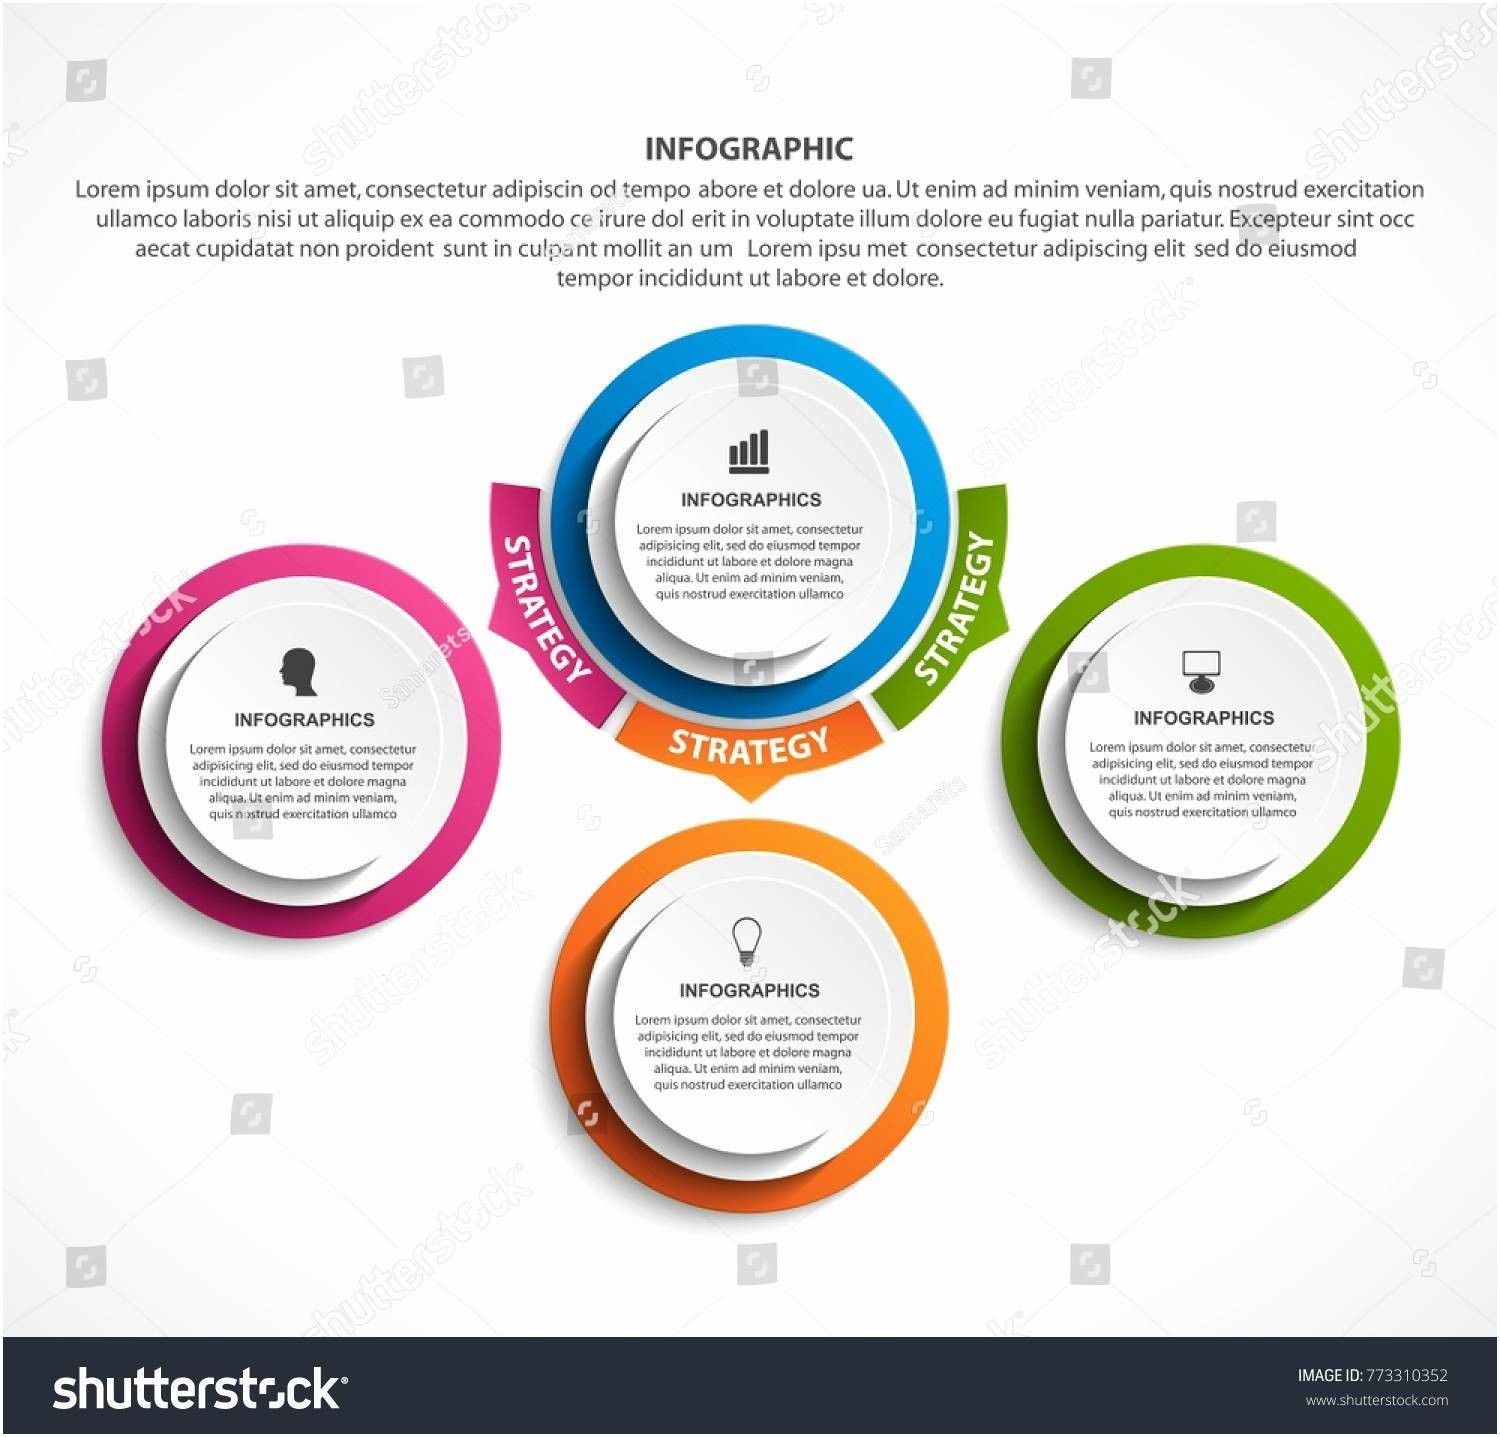 Best Place to Post Resume Online - Post Resume Line Beautiful Posting Resume Line New Best Sample